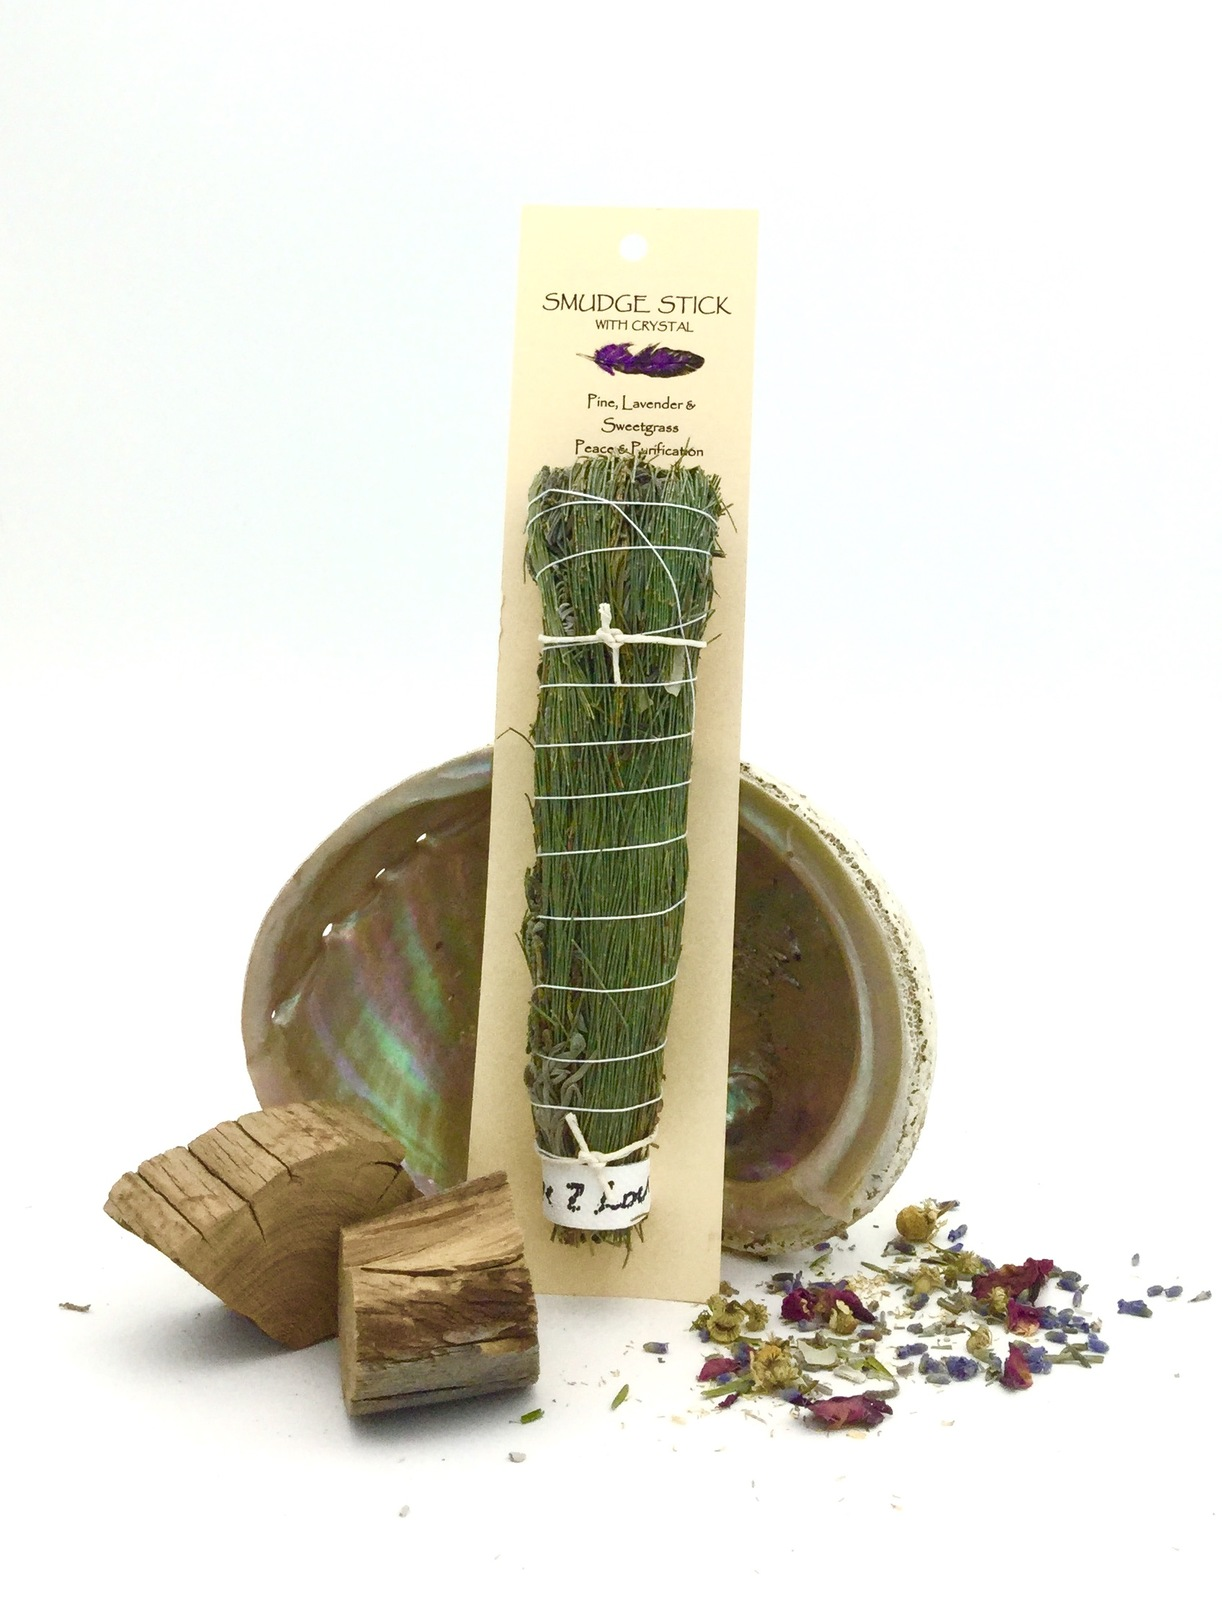 Crystal Magic SMUDGE STICK- Pine & Sweetgrass